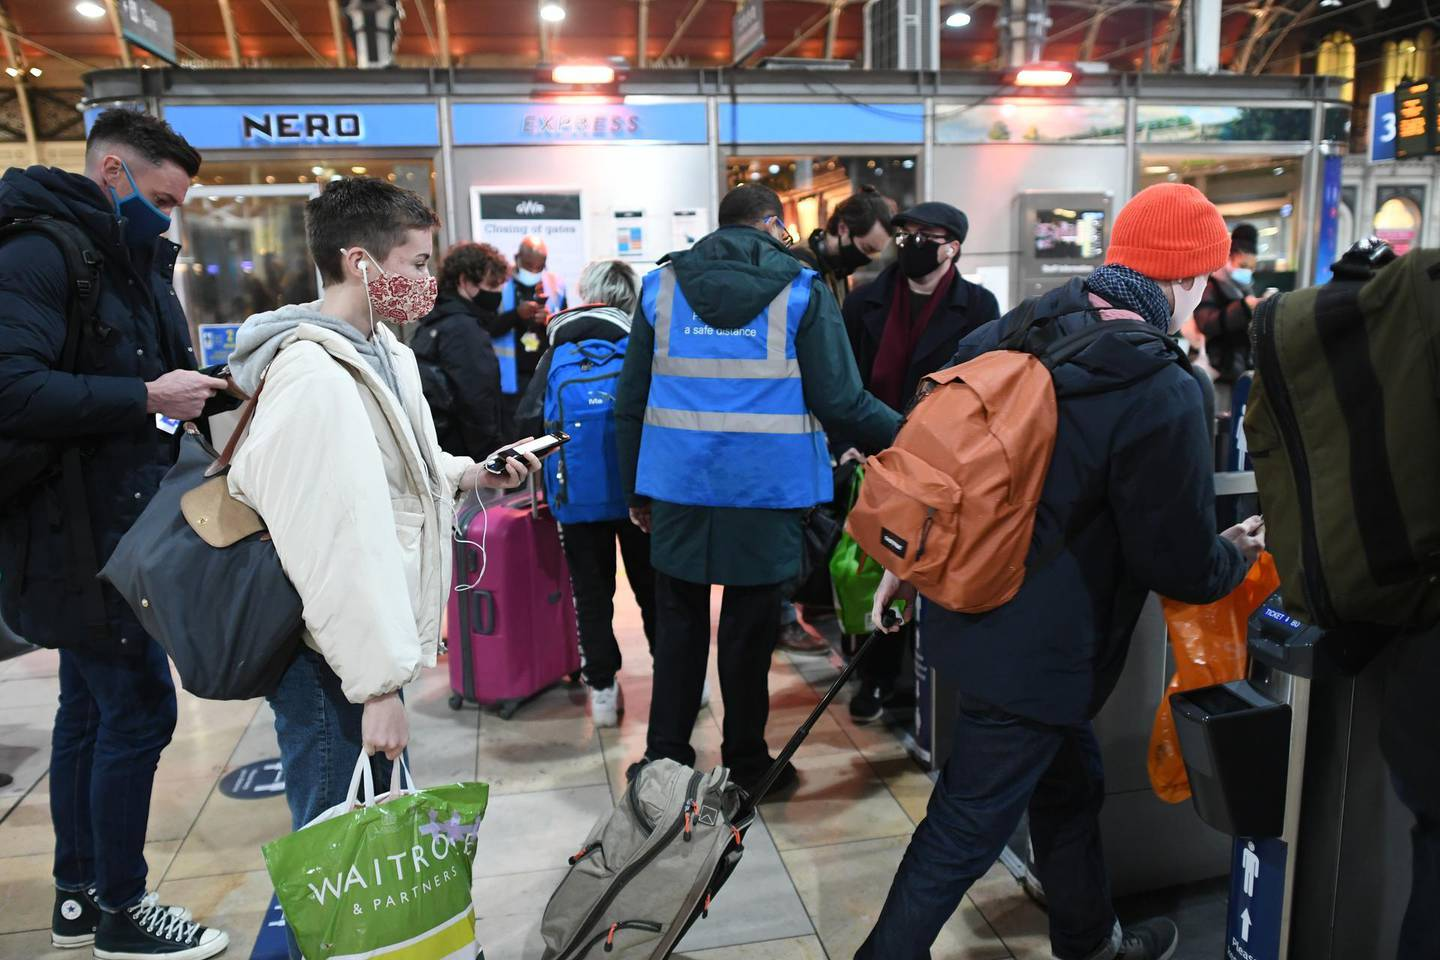 People go through barriers to catch trains at Paddington Station in London, on the last Saturday shopping day before Christmas, after the announcement that London will move into Tier 4 Covid restrictions from midnight. (Photo by Stefan Rousseau/PA Images via Getty Images)